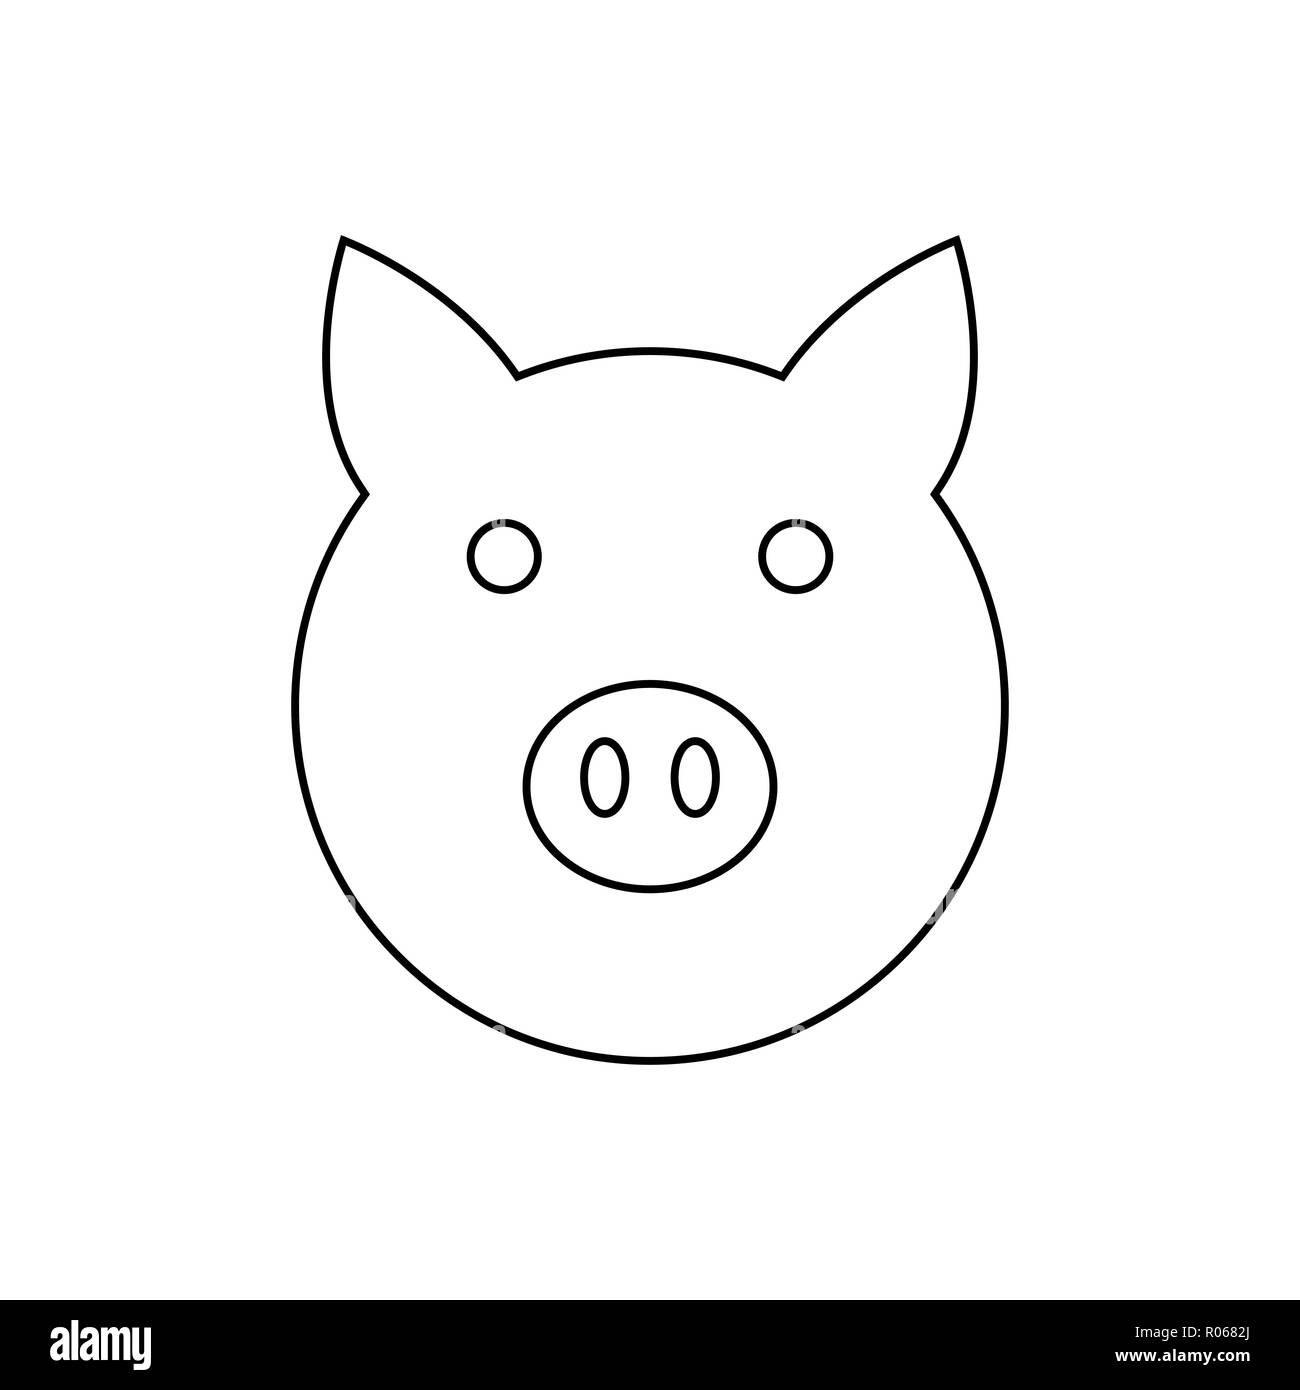 pig icon vector illustration template for your design stock vector